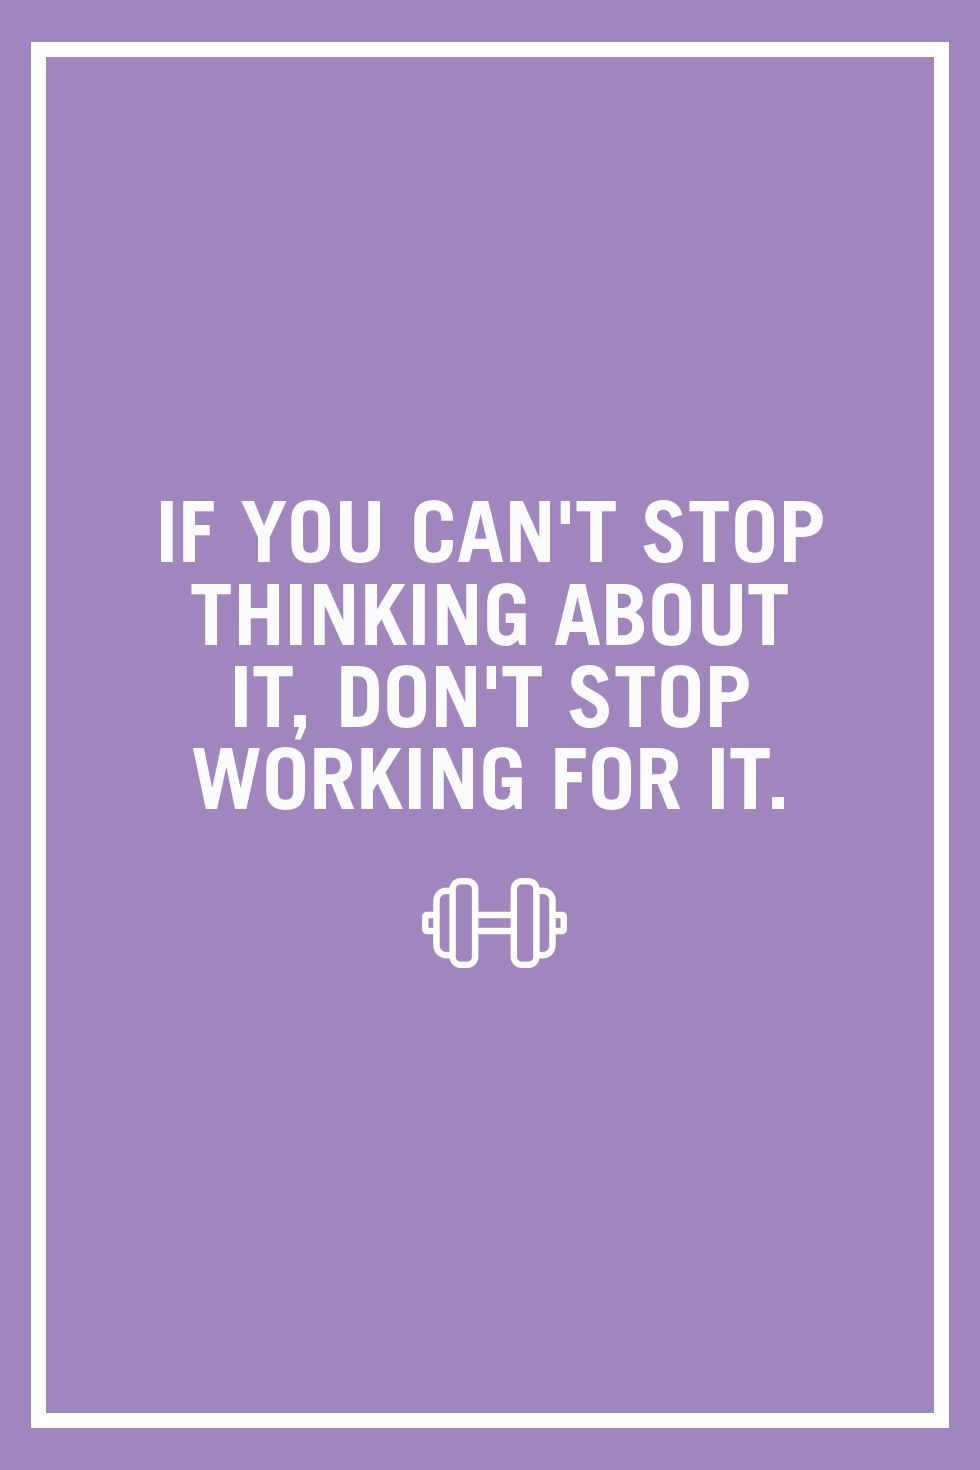 """<p>""""That's my daily motto. I check in with myself every morning when I wake up — if I'm still thinking about the same thing, it's immediately my top of each day. Make your health a priority and you'll be surprised that you <i data-redactor-tag=""""i"""">can</i> make time, you <i data-redactor-tag=""""i"""">can</i> make a change, and you <i data-redactor-tag=""""i"""">can</i> see a difference!"""" <em data-redactor-tag=""""em"""" data-verified=""""redactor"""">—<a href=""""http://rebeccakennedyfitness.com/"""" target=""""_blank"""" data-tracking-id=""""recirc-text-link"""">Rebecca Kennedy</a>, creator of RK Fitness, Nike Master Trainer, and Barry's Bootcamp Master Trainer</em><br></p><p><span class=""""redactor-invisible-space"""" data-verified=""""redactor"""" data-redactor-tag=""""span"""" data-redactor-class=""""redactor-invisible-space""""><strong data-redactor-tag=""""strong"""" data-verified=""""redactor"""">RELATED:<a href=""""http://www.redbookmag.com/life/features/g3982/new-years-resolutions-be-based-on-astrology-signs/"""" target=""""_blank"""" data-tracking-id=""""recirc-text-link"""">What Your New Year's Resolution Should Be, Based On Your Astrological Sign</a></strong><span class=""""redactor-invisible-space"""" data-verified=""""redactor"""" data-redactor-tag=""""span"""" data-redactor-class=""""redactor-invisible-space""""><strong data-redactor-tag=""""strong"""" data-verified=""""redactor""""><a href=""""http://www.redbookmag.com/life/features/g3982/new-years-resolutions-be-based-on-astrology-signs/""""></a></strong></span></span></p>"""